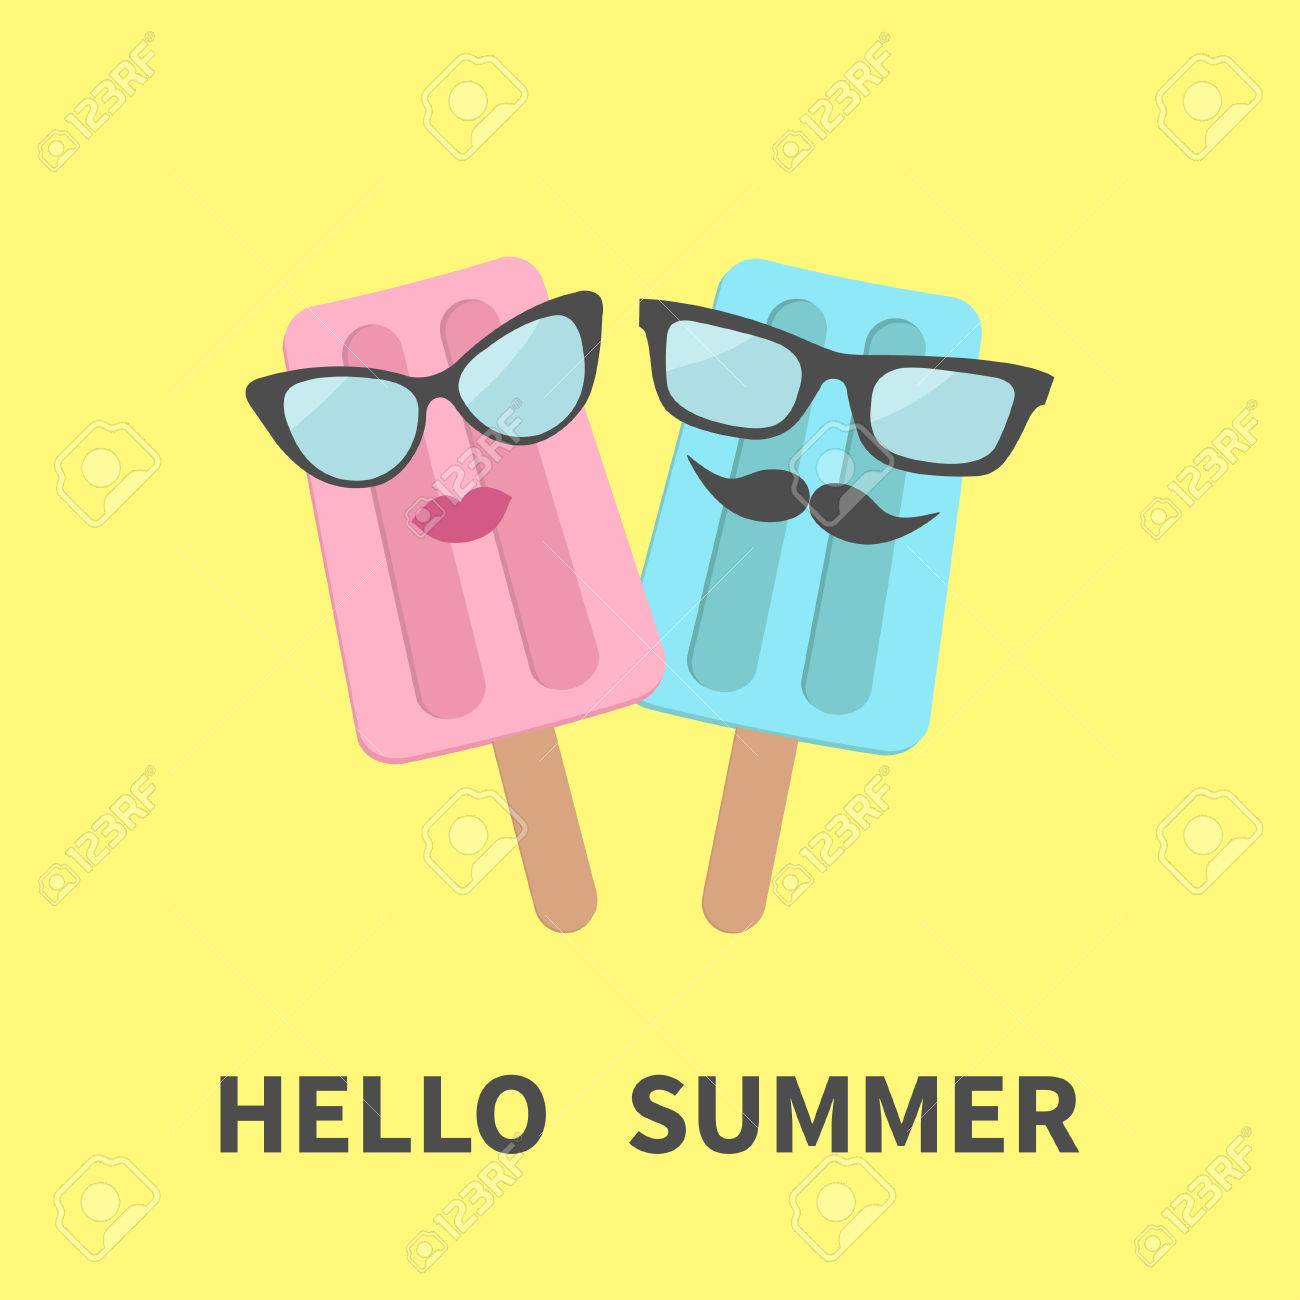 Ice Cream Couple With Lips, Mustaches And Eyeglasses. Hello Summer Greeting  Card. Flat